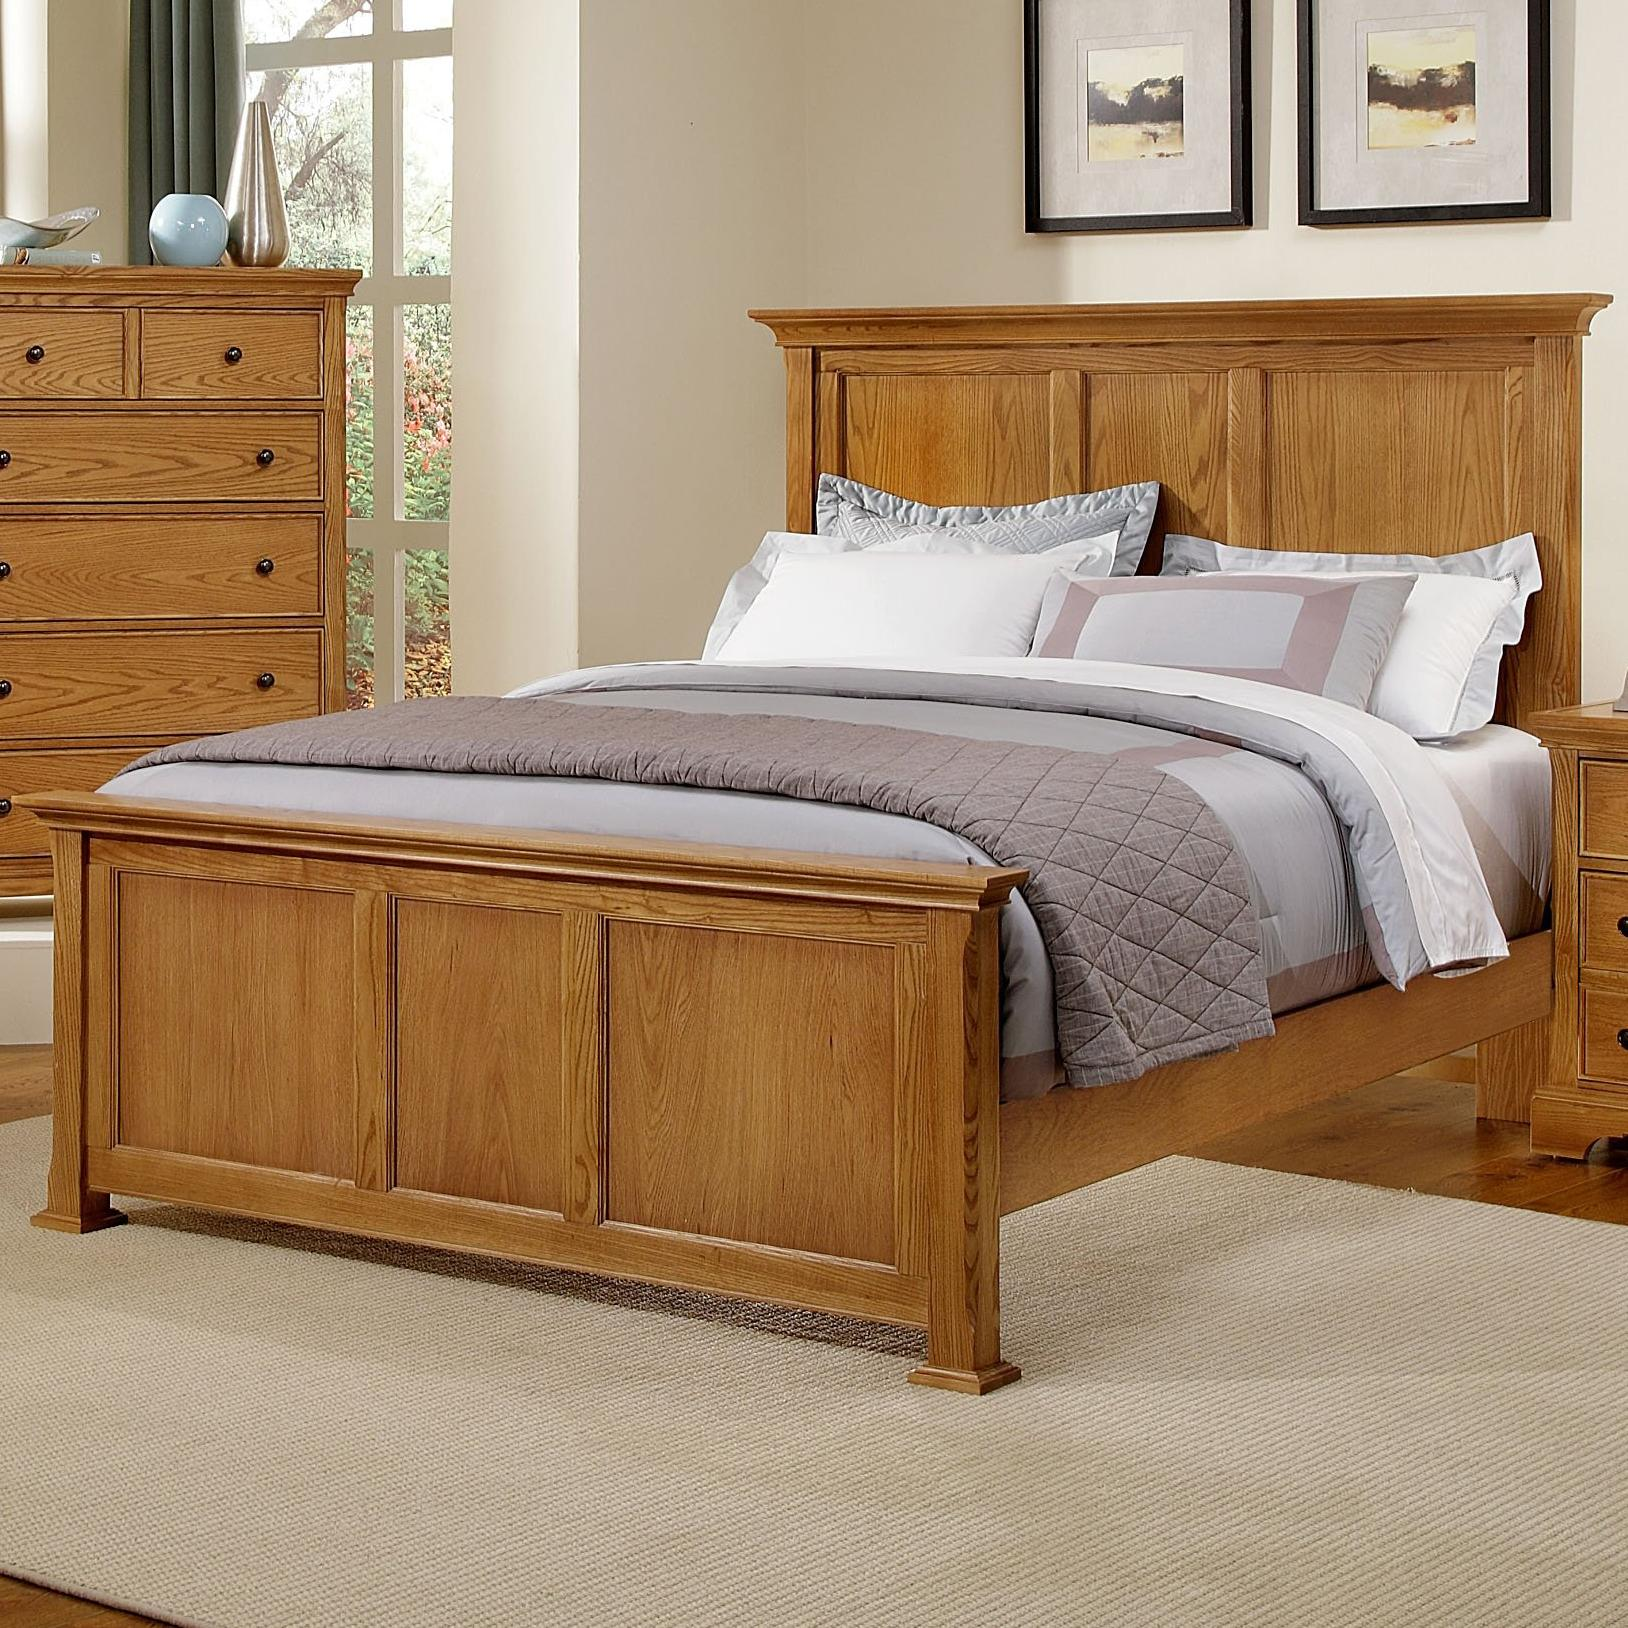 Vaughan Bassett Forsyth King Panel Bed - Item Number: BB75-668+866+922